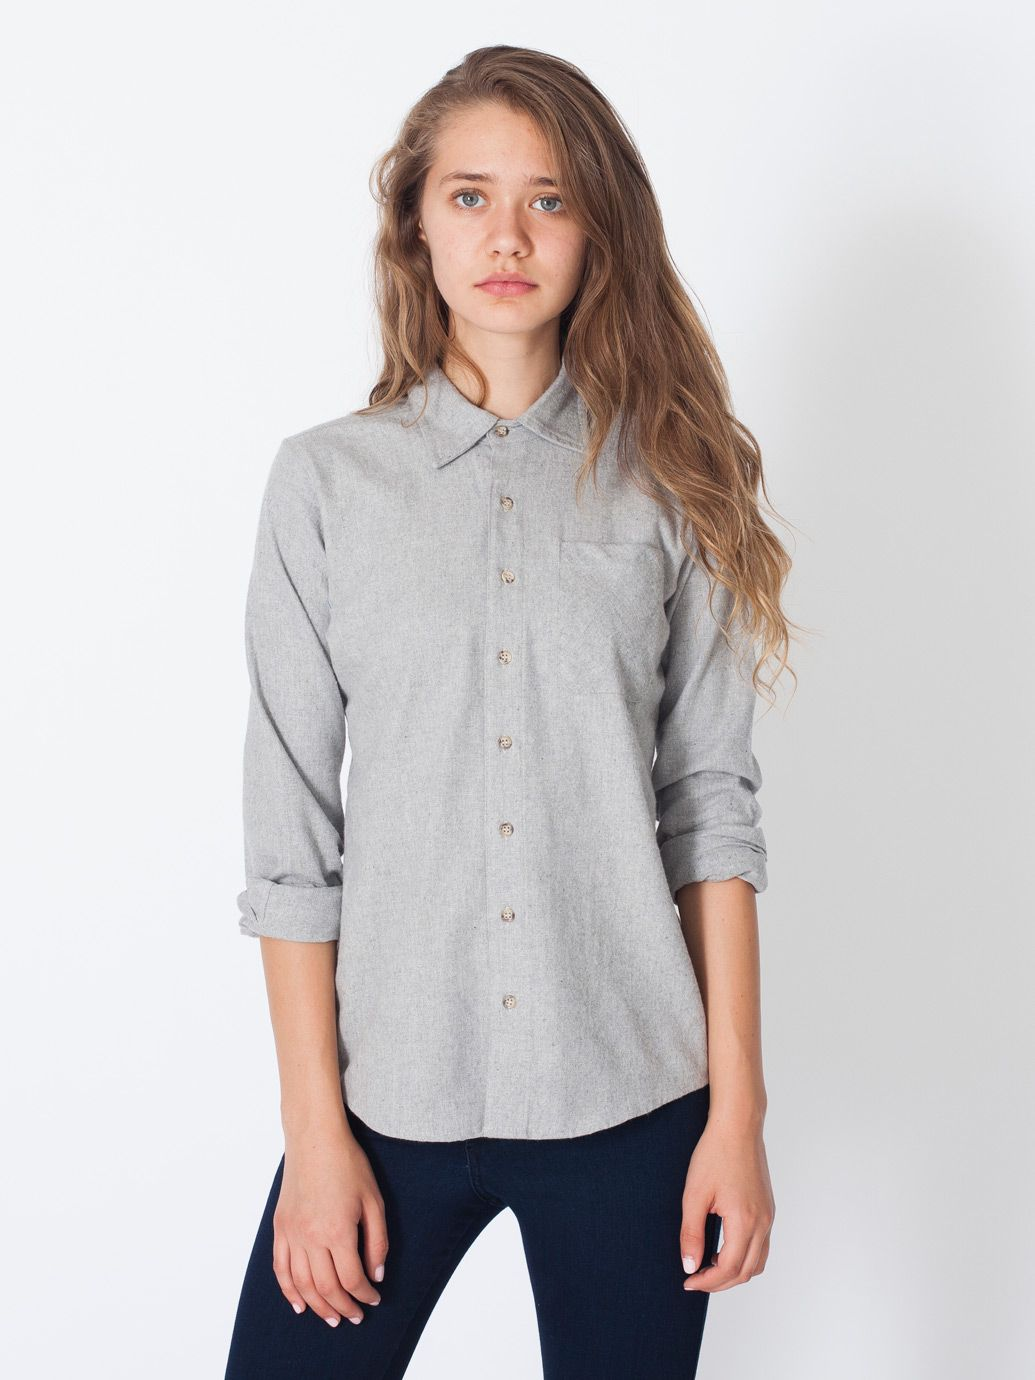 Unisex Flannel Long Sleeve Button Up Long Sleeves Womens